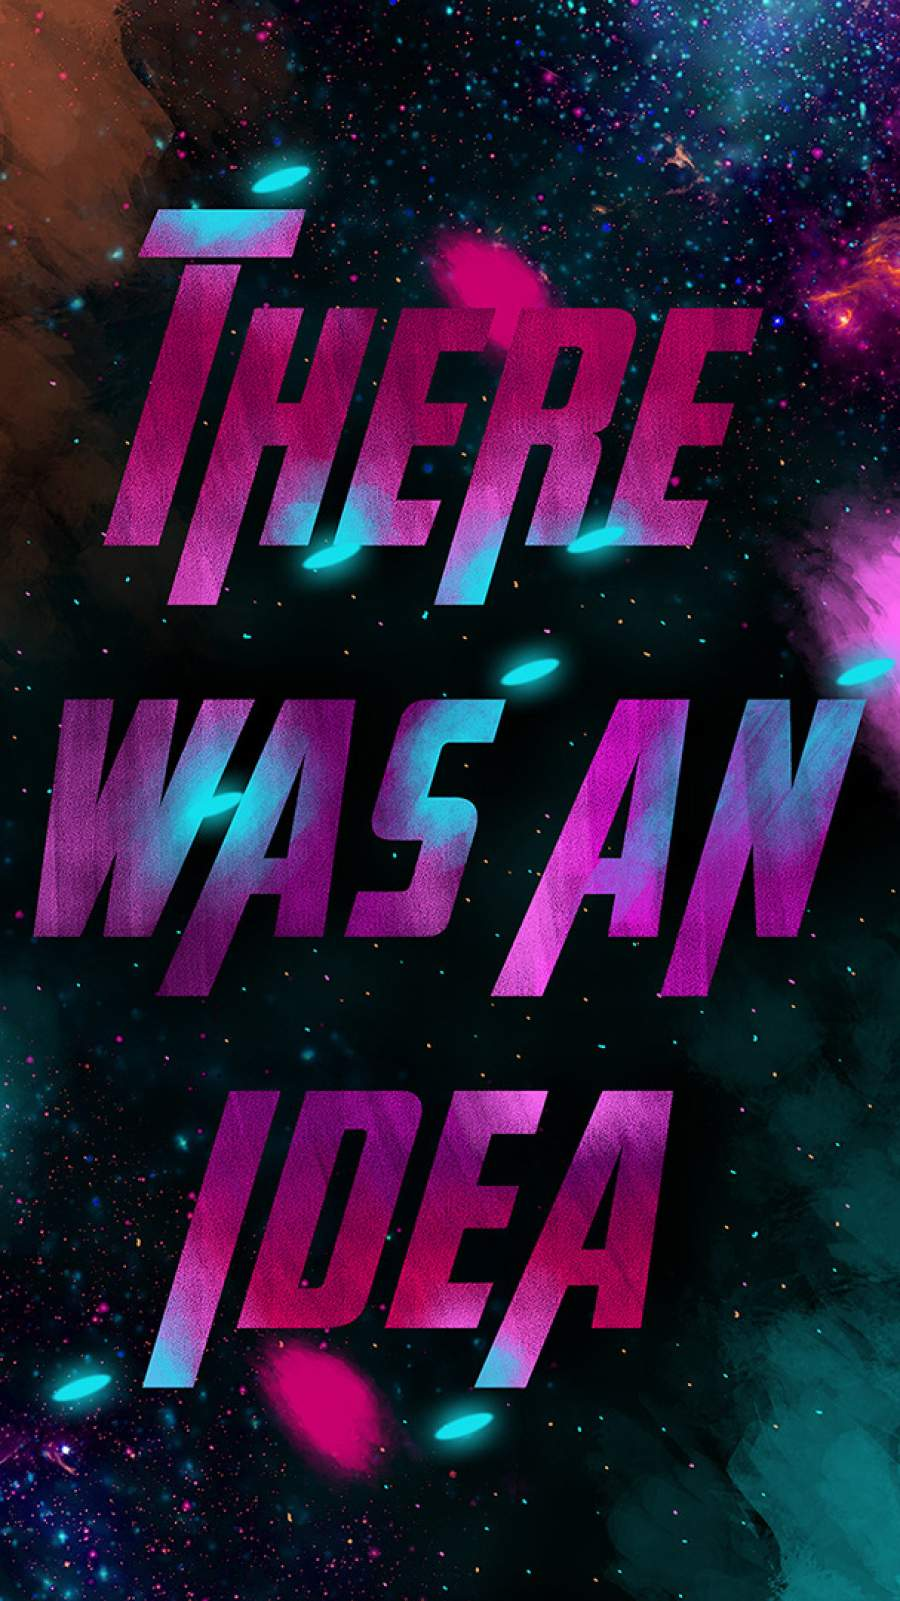 There Was an Idea iPhone Wallpaper